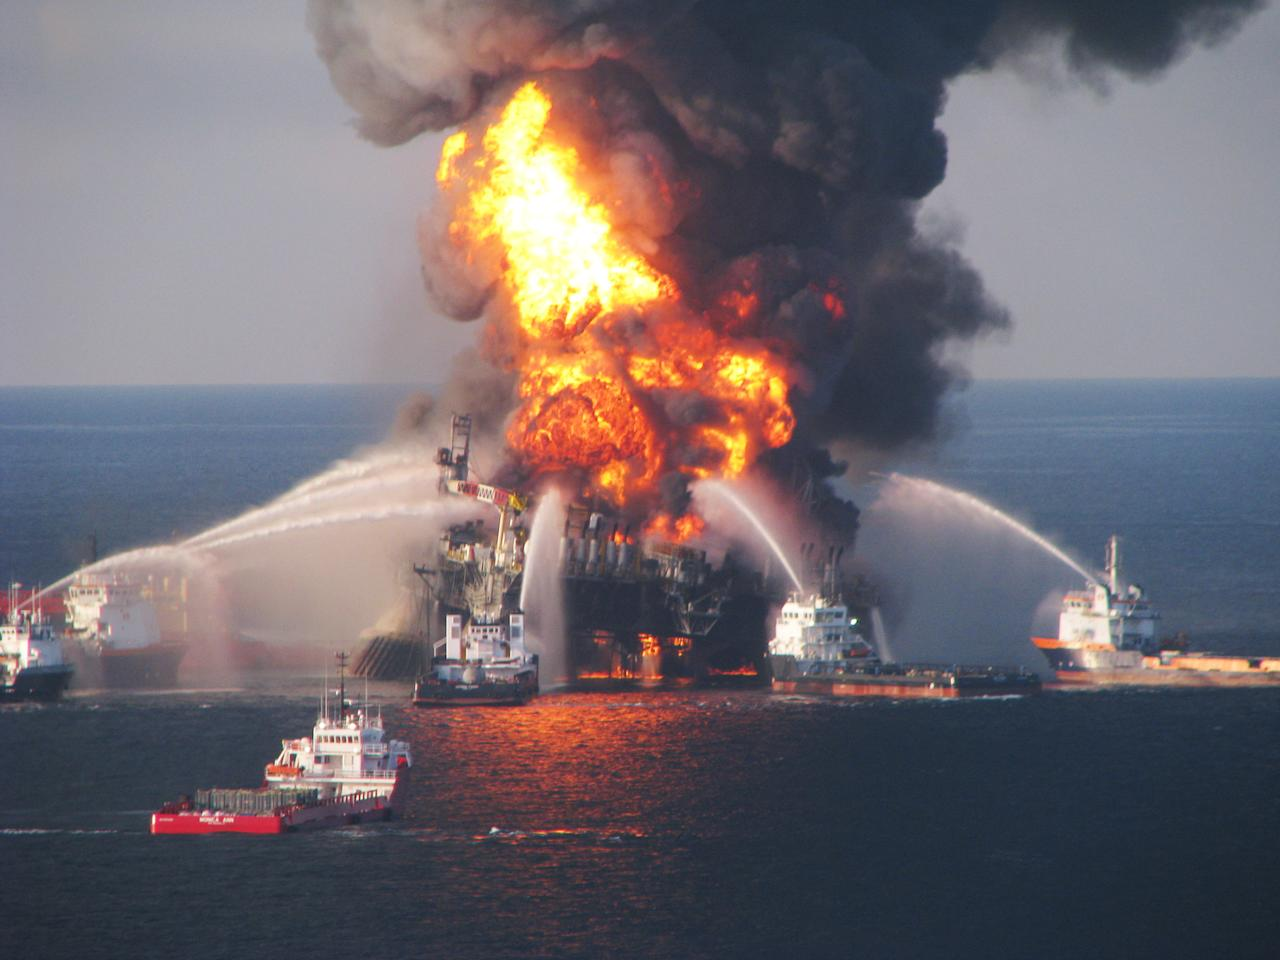 "Only once before had a news story taken the No. 1 slot in Top Searches on Yahoo — namely, the death of Michael Jackson. On April 20, 2010, the Deepwater Horizon oil rig exploded, killing 11. As we <a target=""_blank"" href=""https://2010.yearinreview.yahoo.com/2010/us_top_10_searches/#Top%2010%20Searches"">noted</a>, ""The gushing crude took 86 days to cap. The live feed from the  ocean floor became must-watch viewing, as massive online scrutiny  monitored best (and not so best) efforts to kill the well and stop the  worst spill in marine history."" <ol class=""yom-list""><li>BP Oil Spill</li><li>World Cup</li><li>Miley Cyrus</li><li>Kim Kardashian</li><li>Lady Gaga</li><li>iPhone</li><li>Megan Fox</li><li>Justin Bieber</li><li>American Idol</li><li>Britney Spears</li></ol>A whopping <a target=""_blank"" href=""http://2010.yearinreview.yahoo.com/2010/blog/13485/shortcuts-to-2010/"">144 articles</a> only skimmed the Search stream in 2010. <a target=""_blank"" href=""http://2010.yearinreview.yahoo.com/2010/us_natural_disasters/#Natural%20Disasters"">Monumental natural disasters</a> included earthquakes in Haiti, Chile and China, floods in Pakistan and Nashville; an Iceland volcano even grounded global air traffic. Yet <a target=""_blank"" href=""http://2010.yearinreview.yahoo.com/2010/us_natural_disasters/#Natural%20Disasters"">tales of heroism</a> amazed us, from the Deepwater Horizon crew, the Chilean miners trapped underground, and the miraculous ""return"" of kidnapped young girl Jaycee Dugard hiding in plain sight, grown up with her two children."